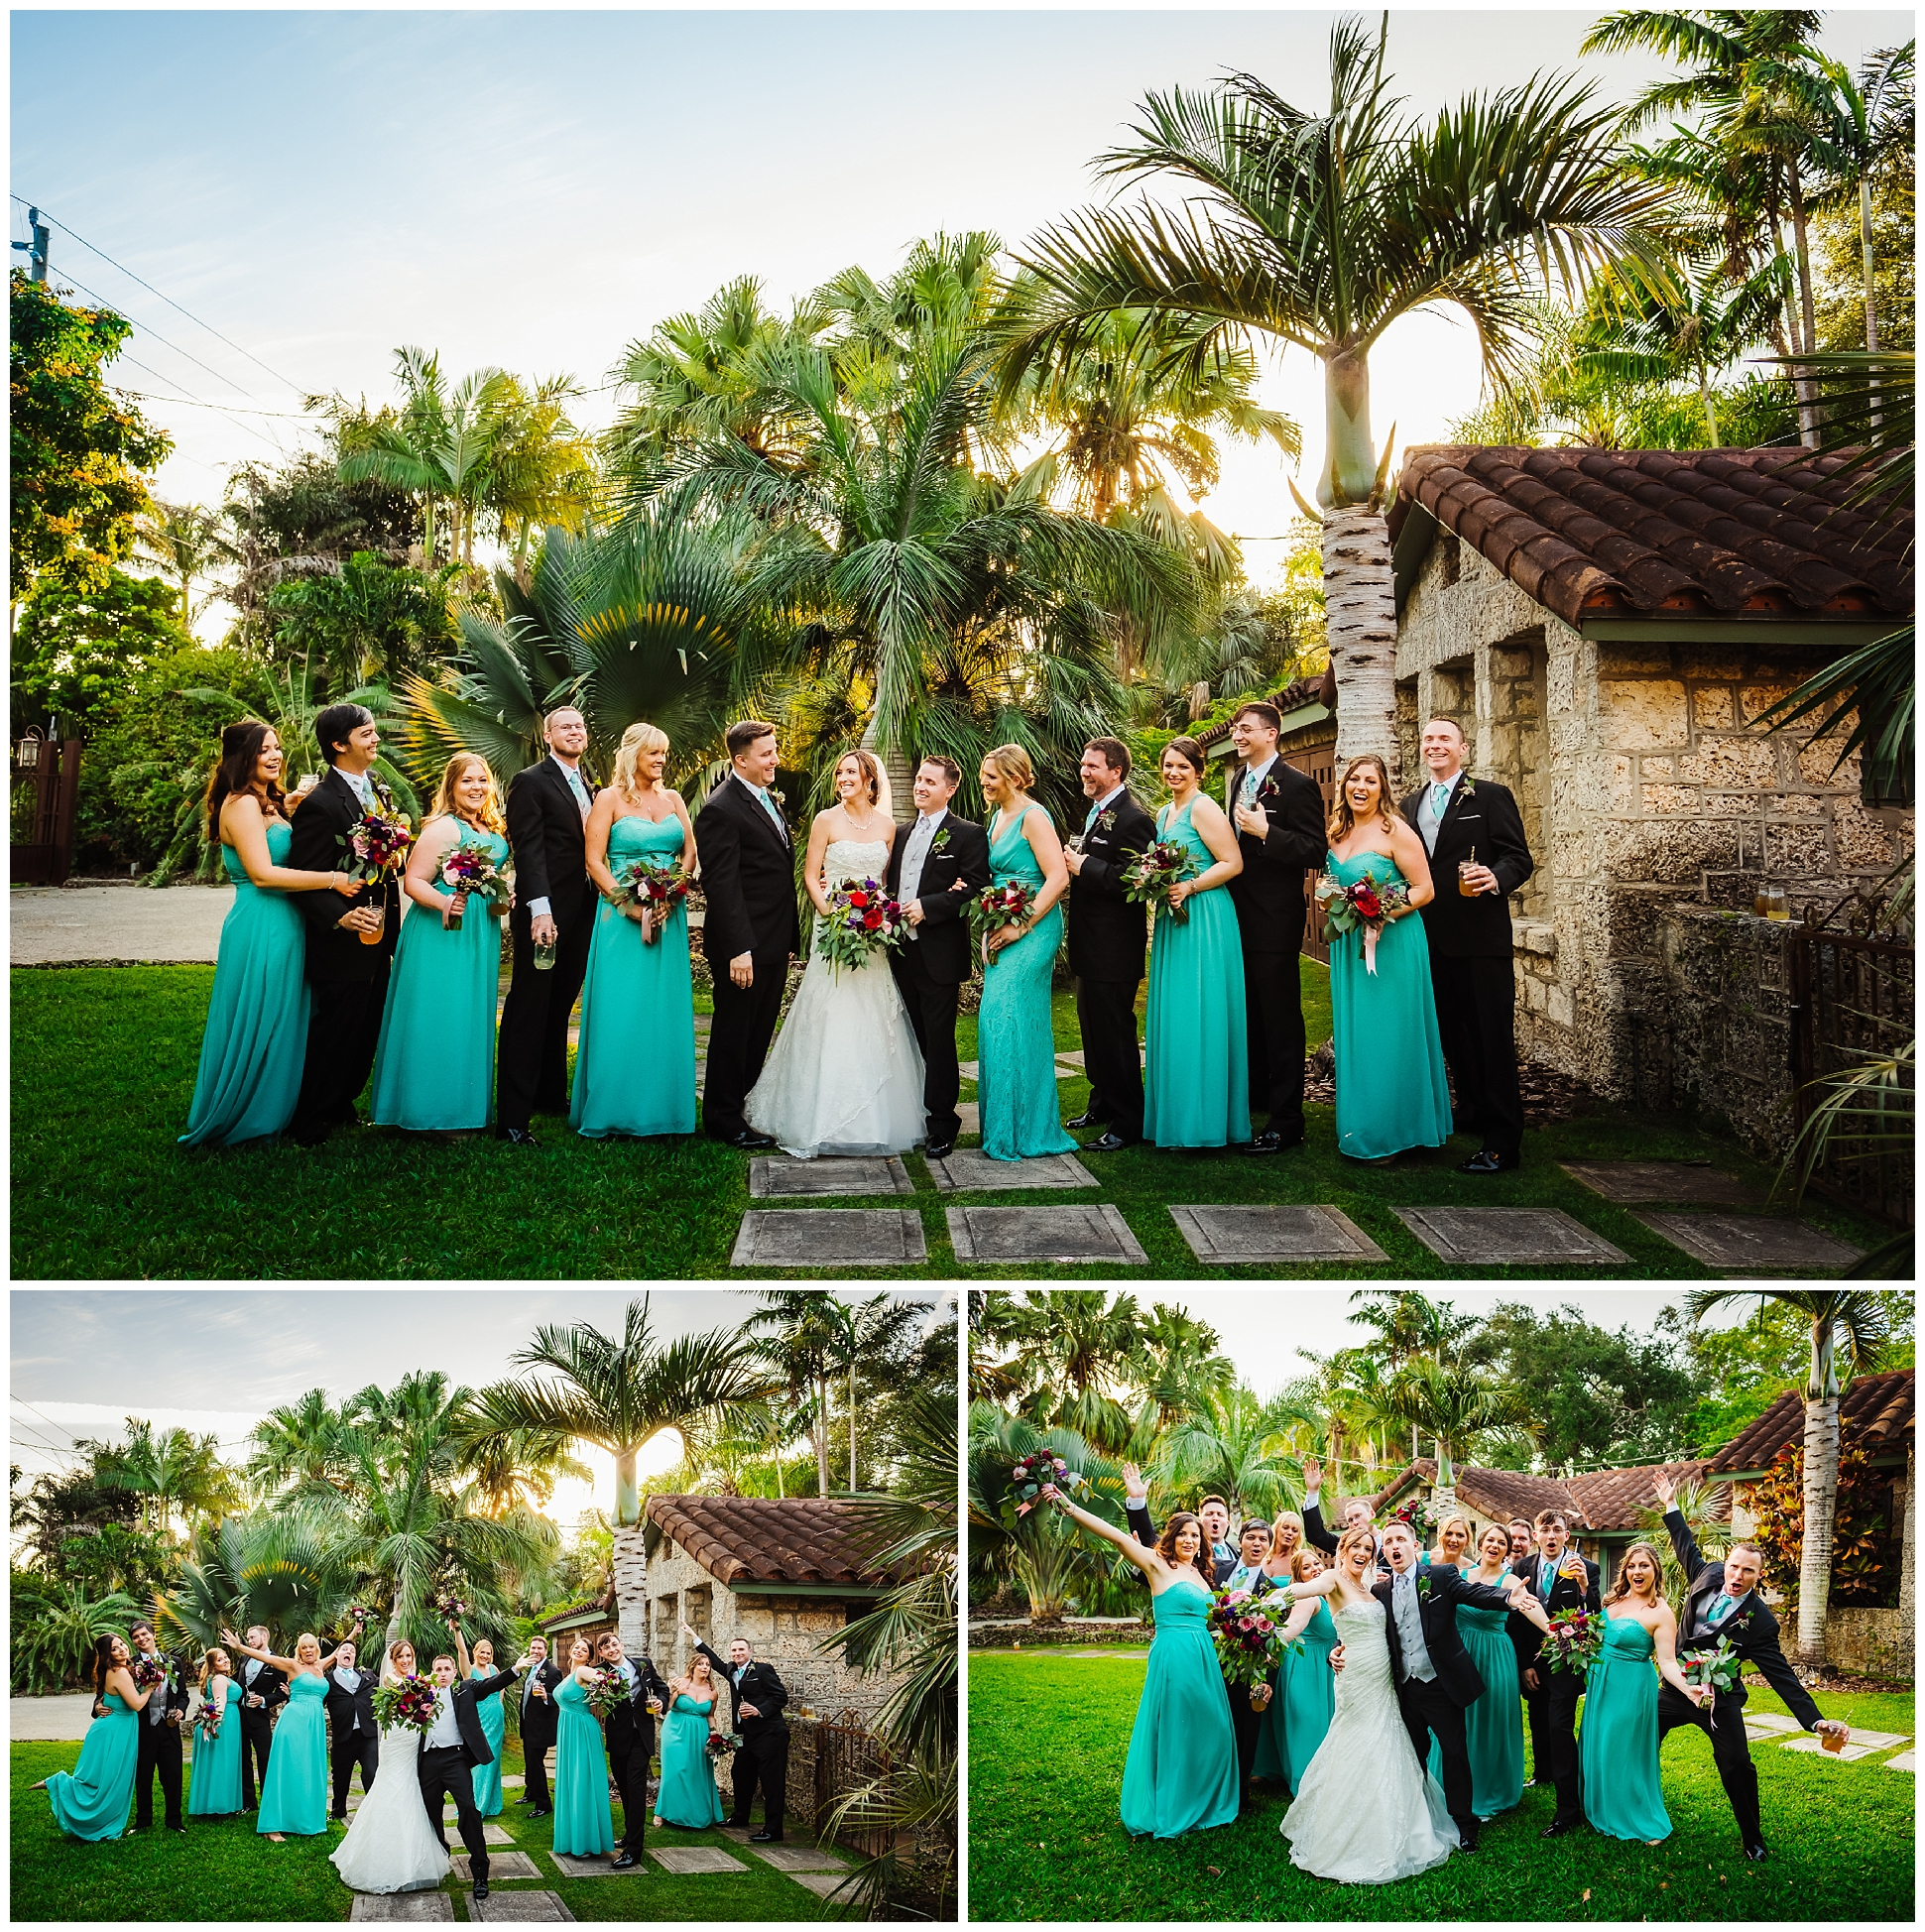 florida-destination-wedding-photographer-enchanted-tropical-miami-homestead-cooper-estate-teal_0059.jpg